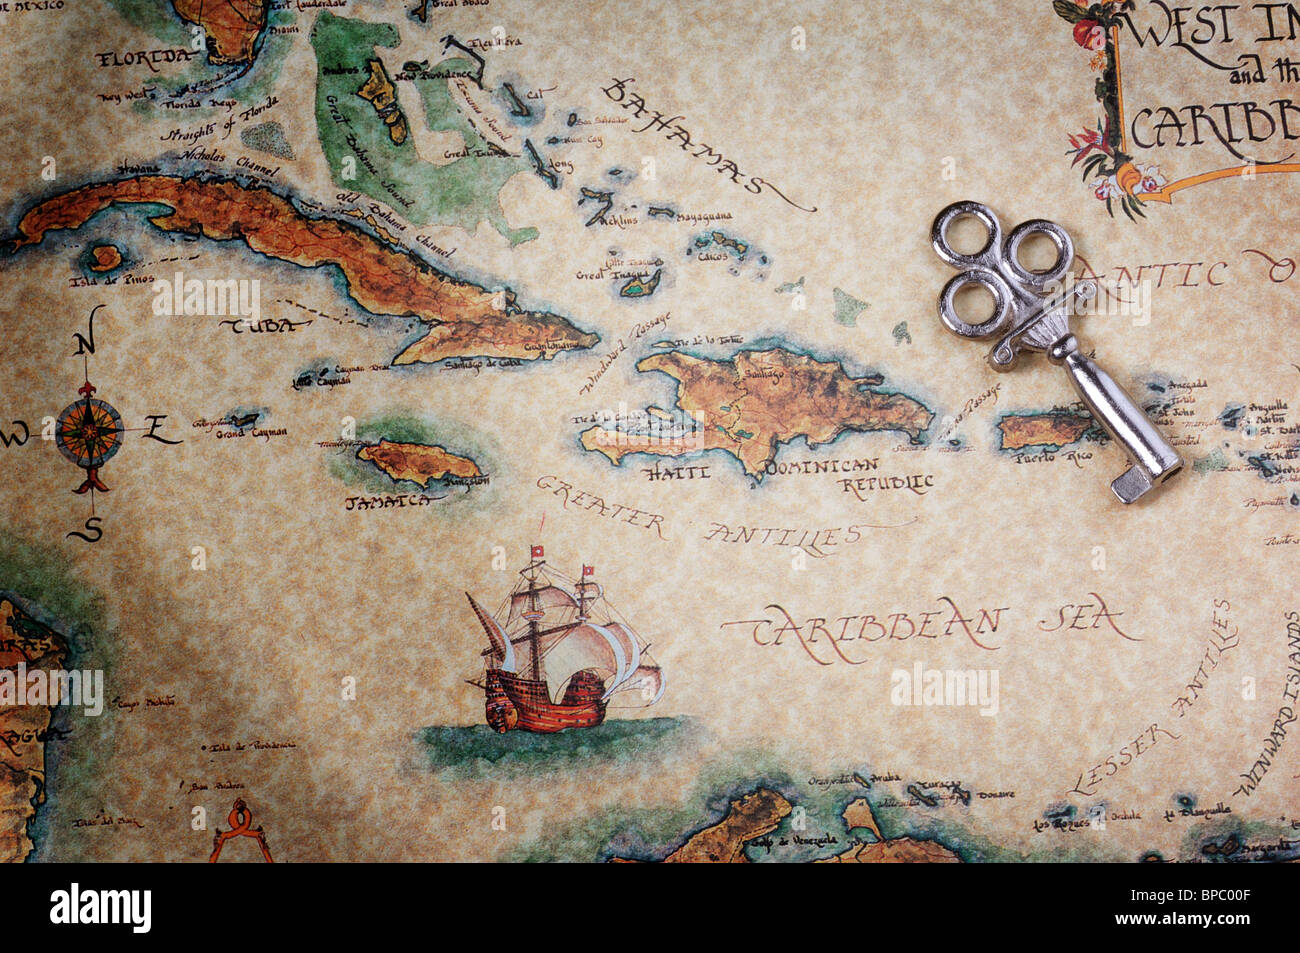 Treasure Map - Stock Image